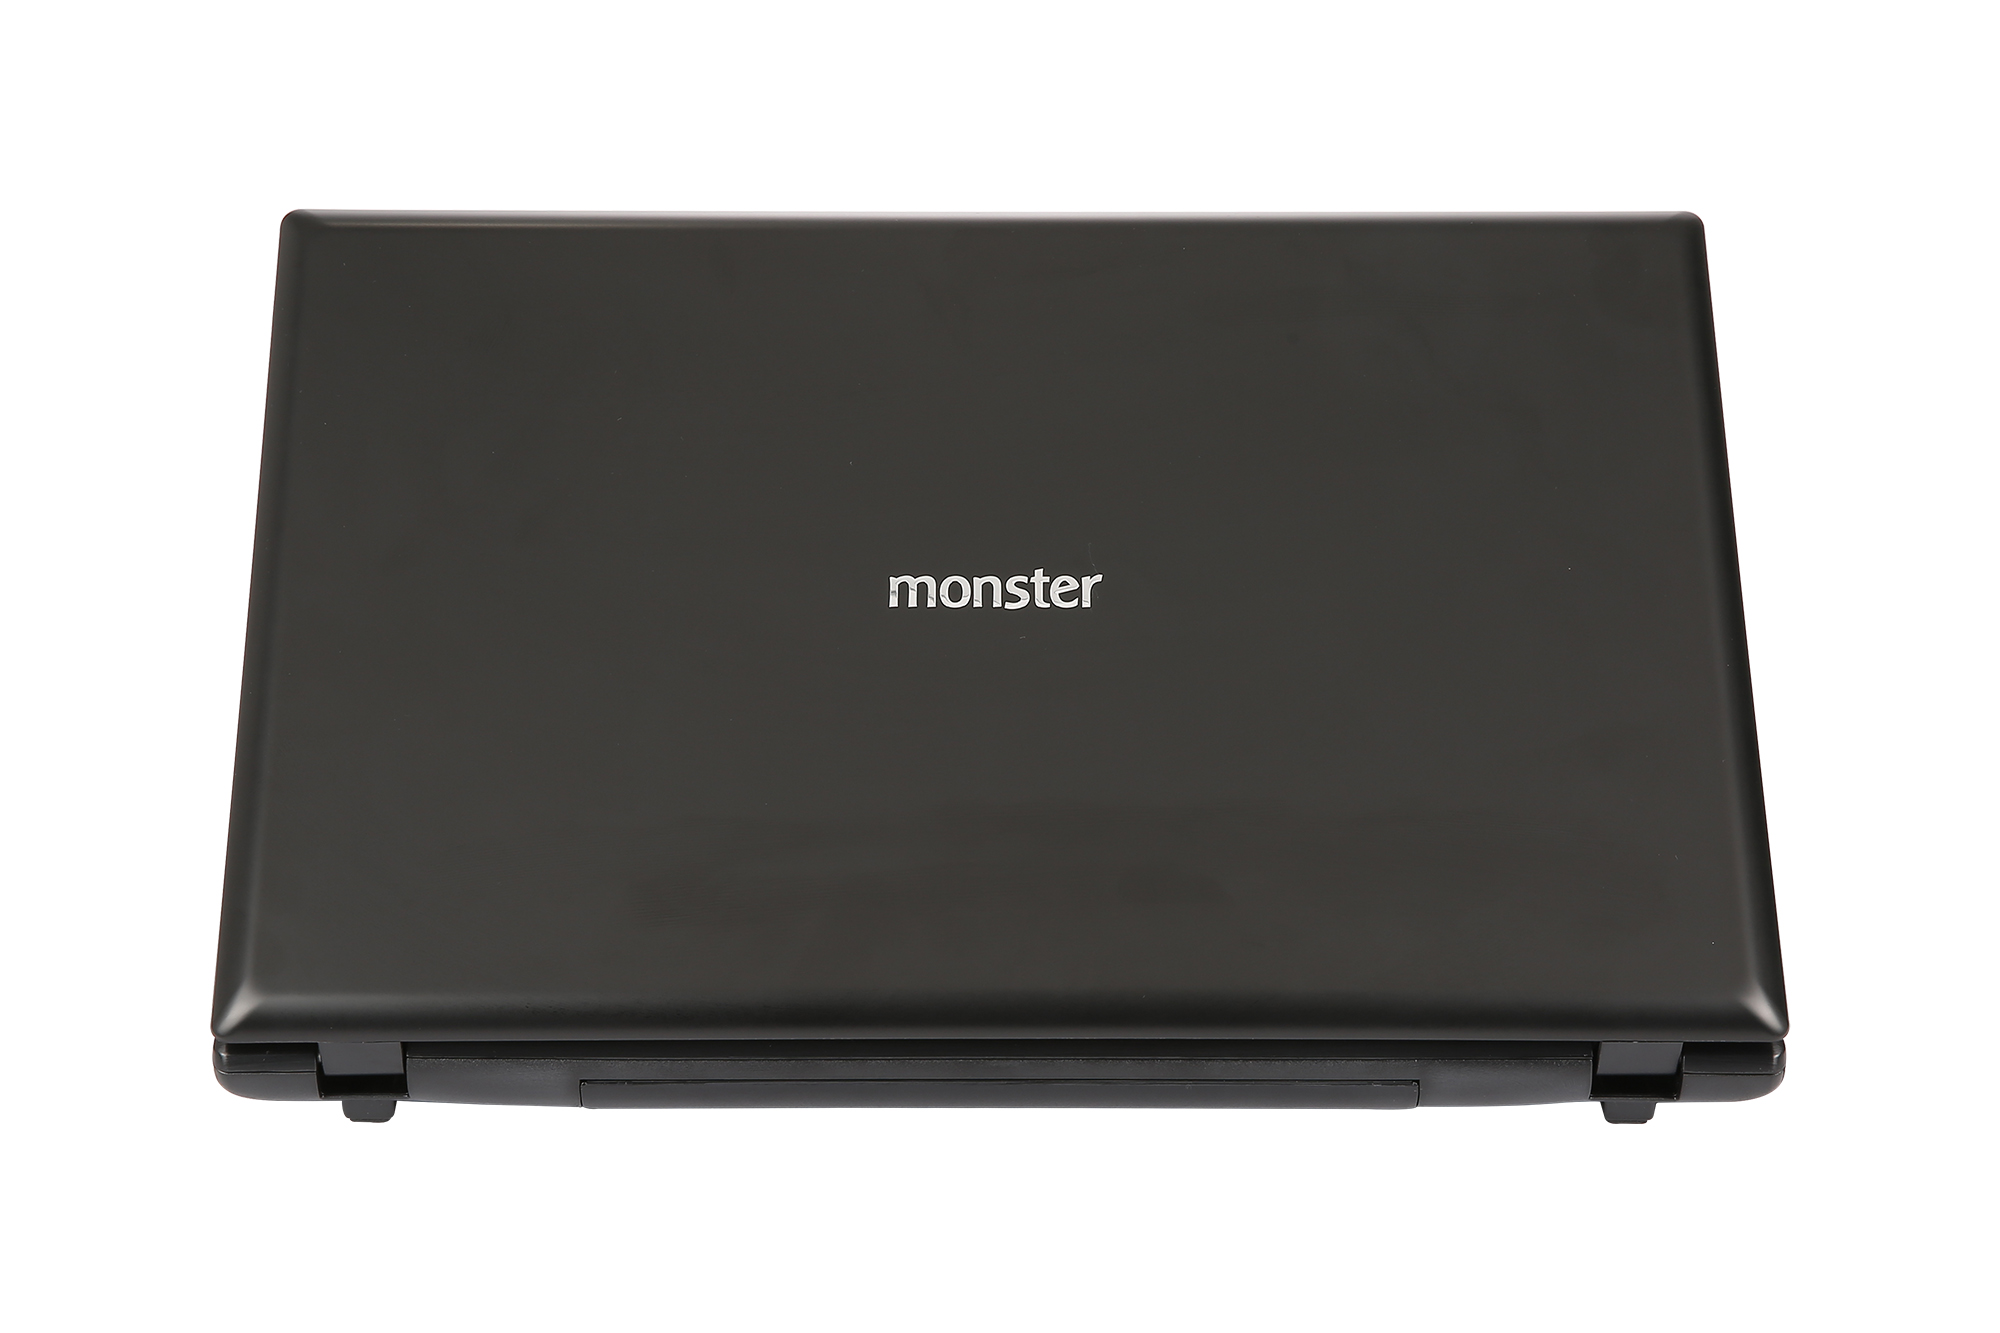 MONSTER® ABRA A5 V3.1 15.6